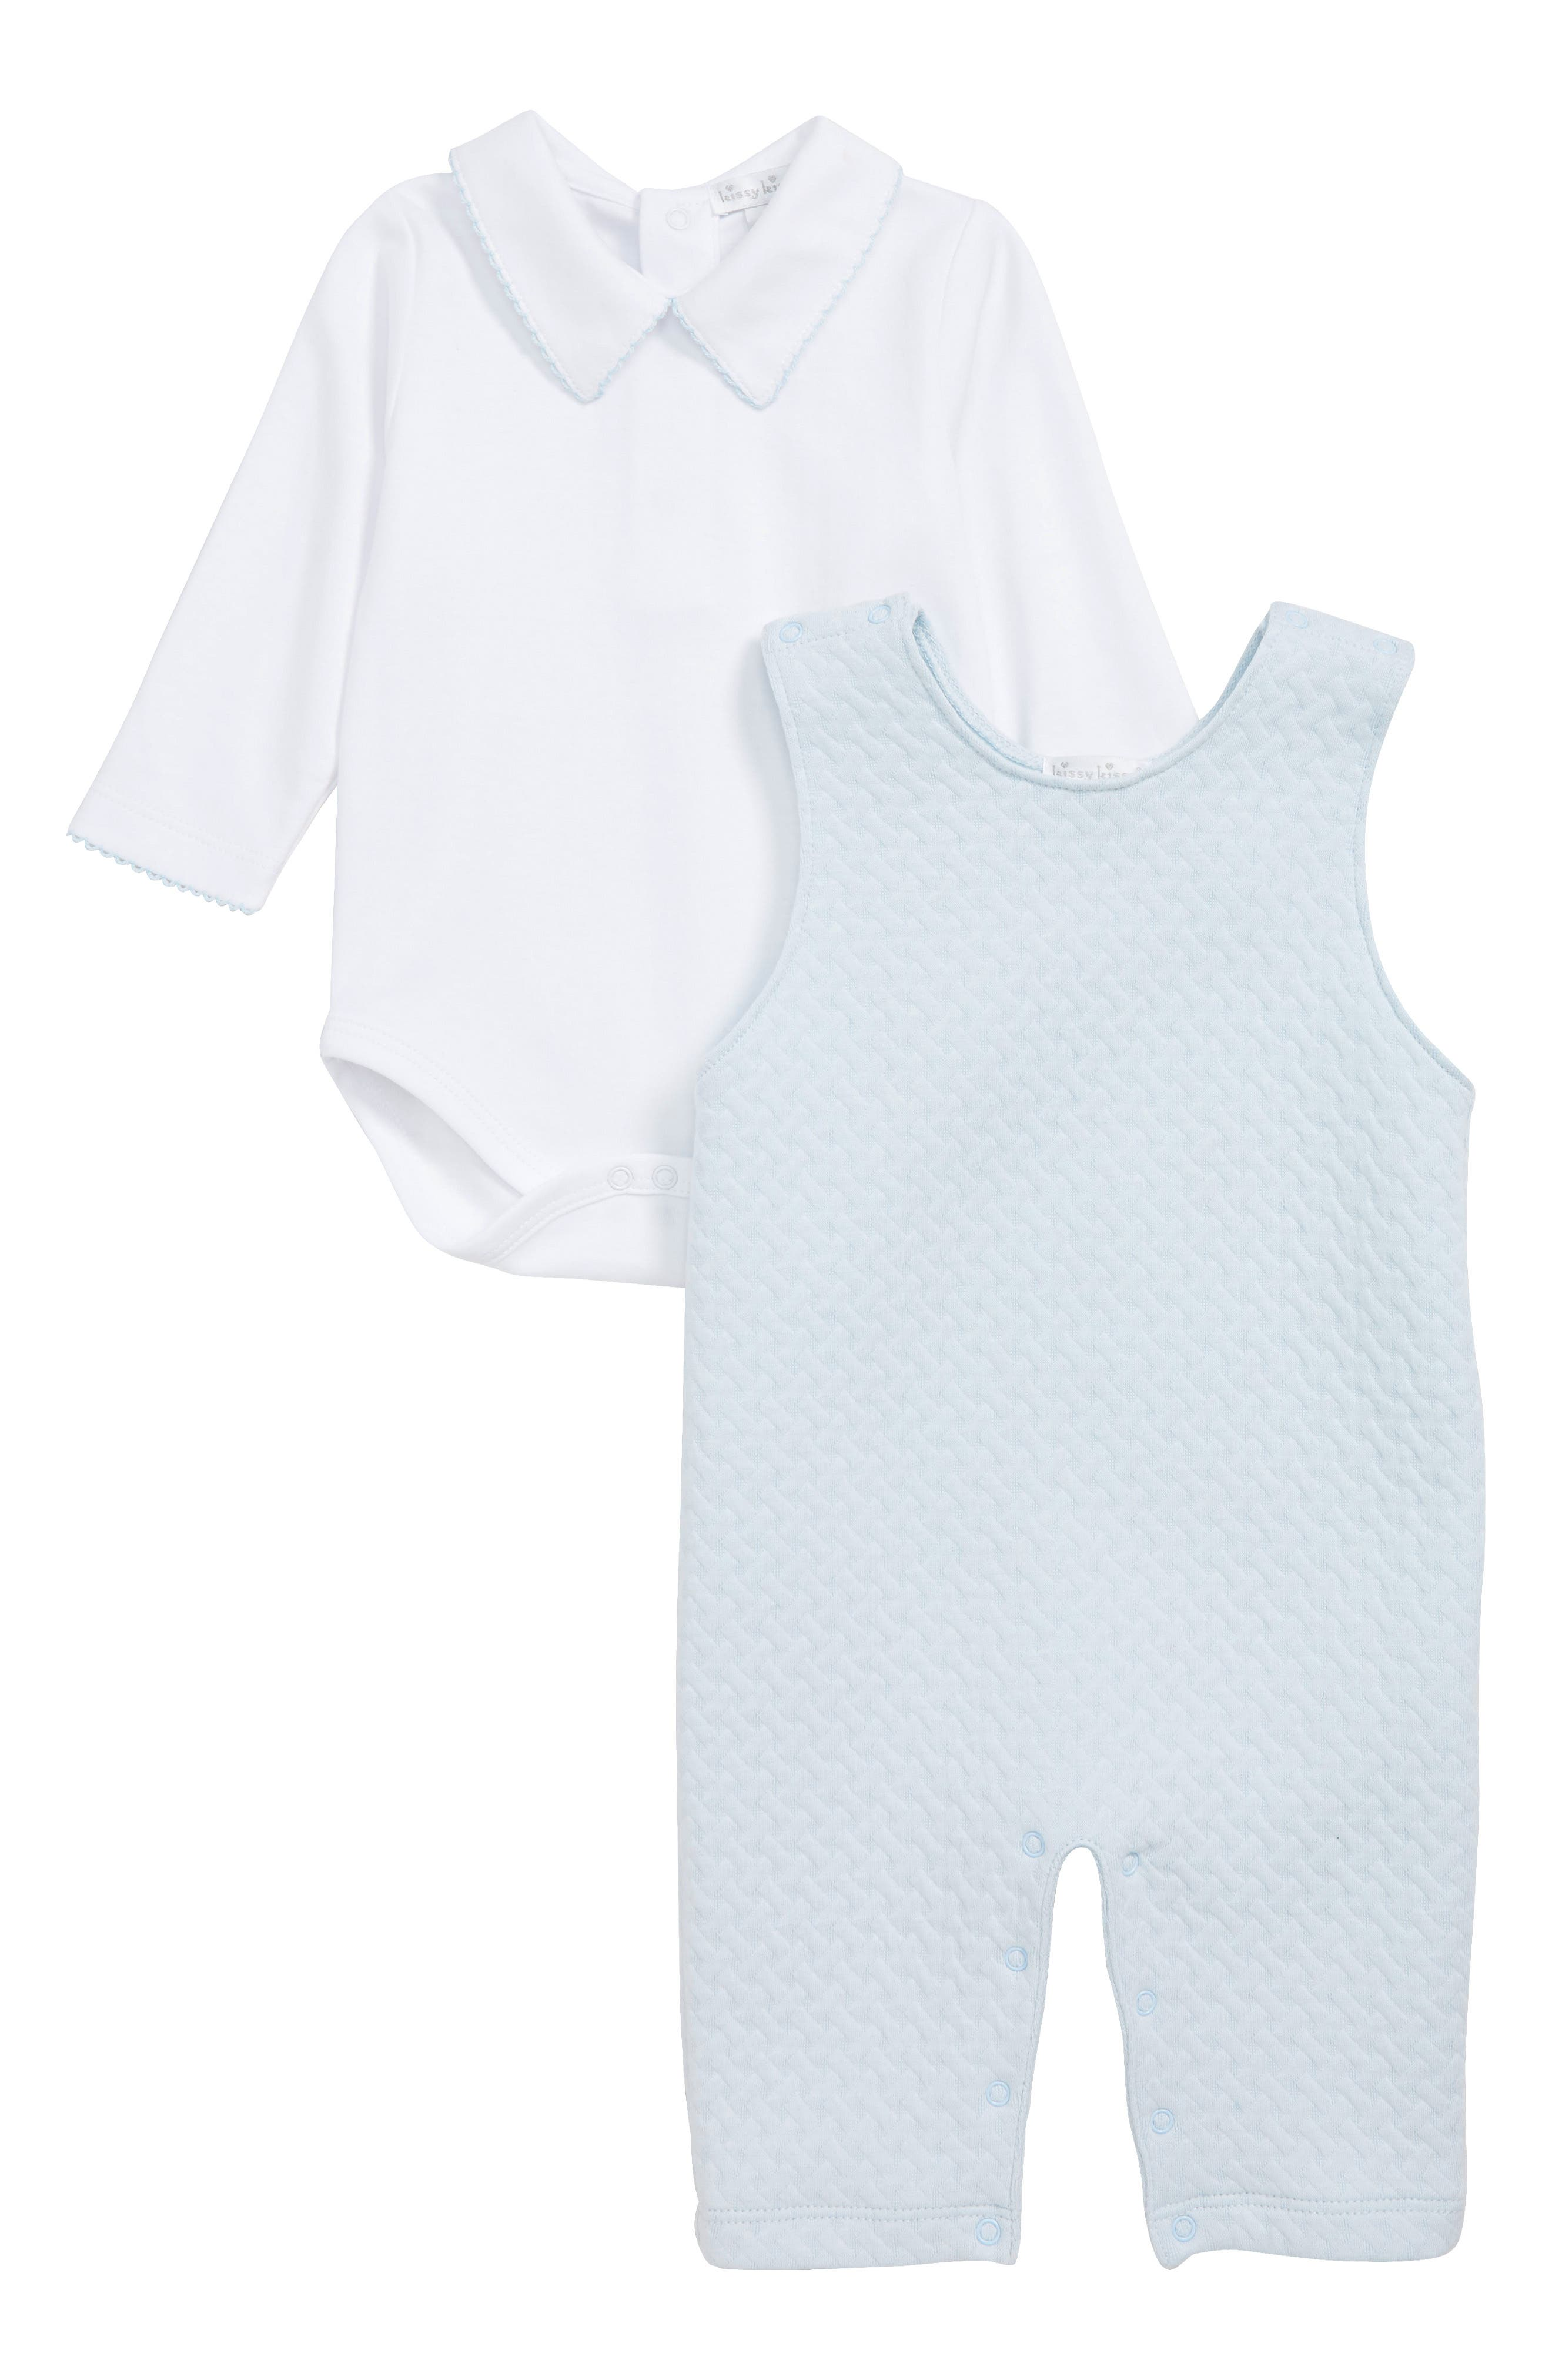 Classic Shirt & Quilted Romper Set,                             Main thumbnail 1, color,                             LIGHT BLUE